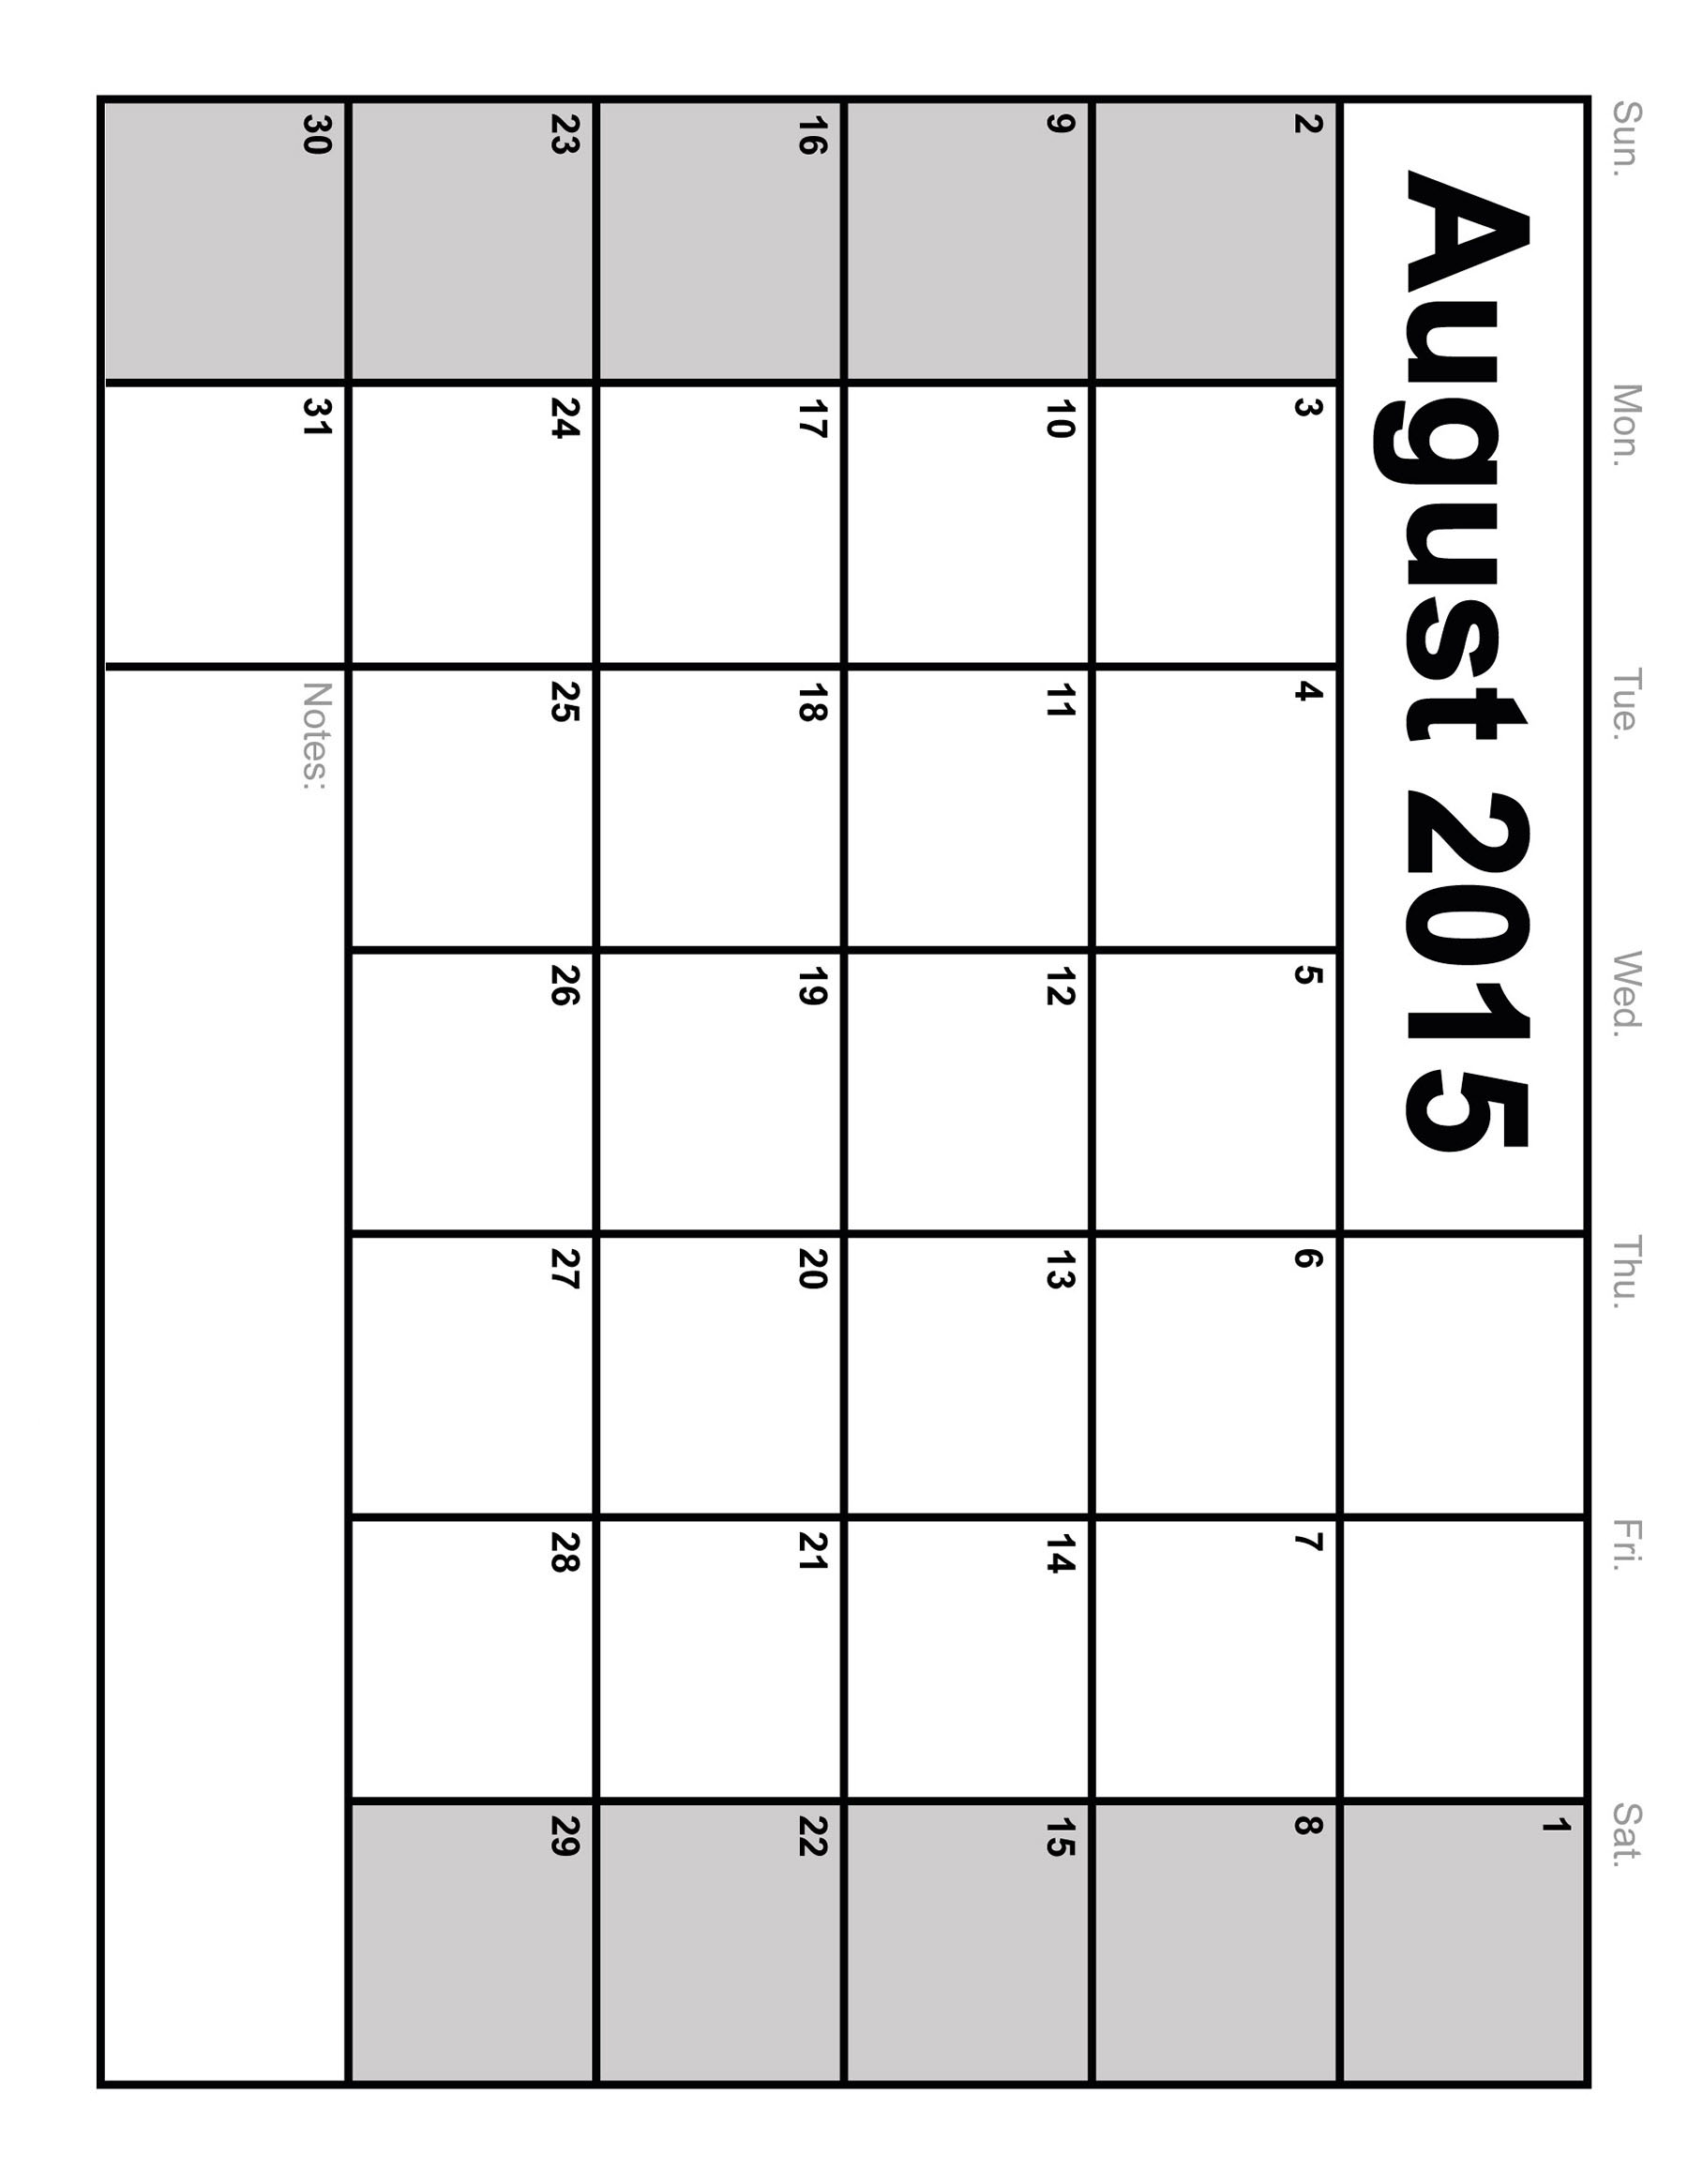 8 Images of Blank 2015 Calendar Printable